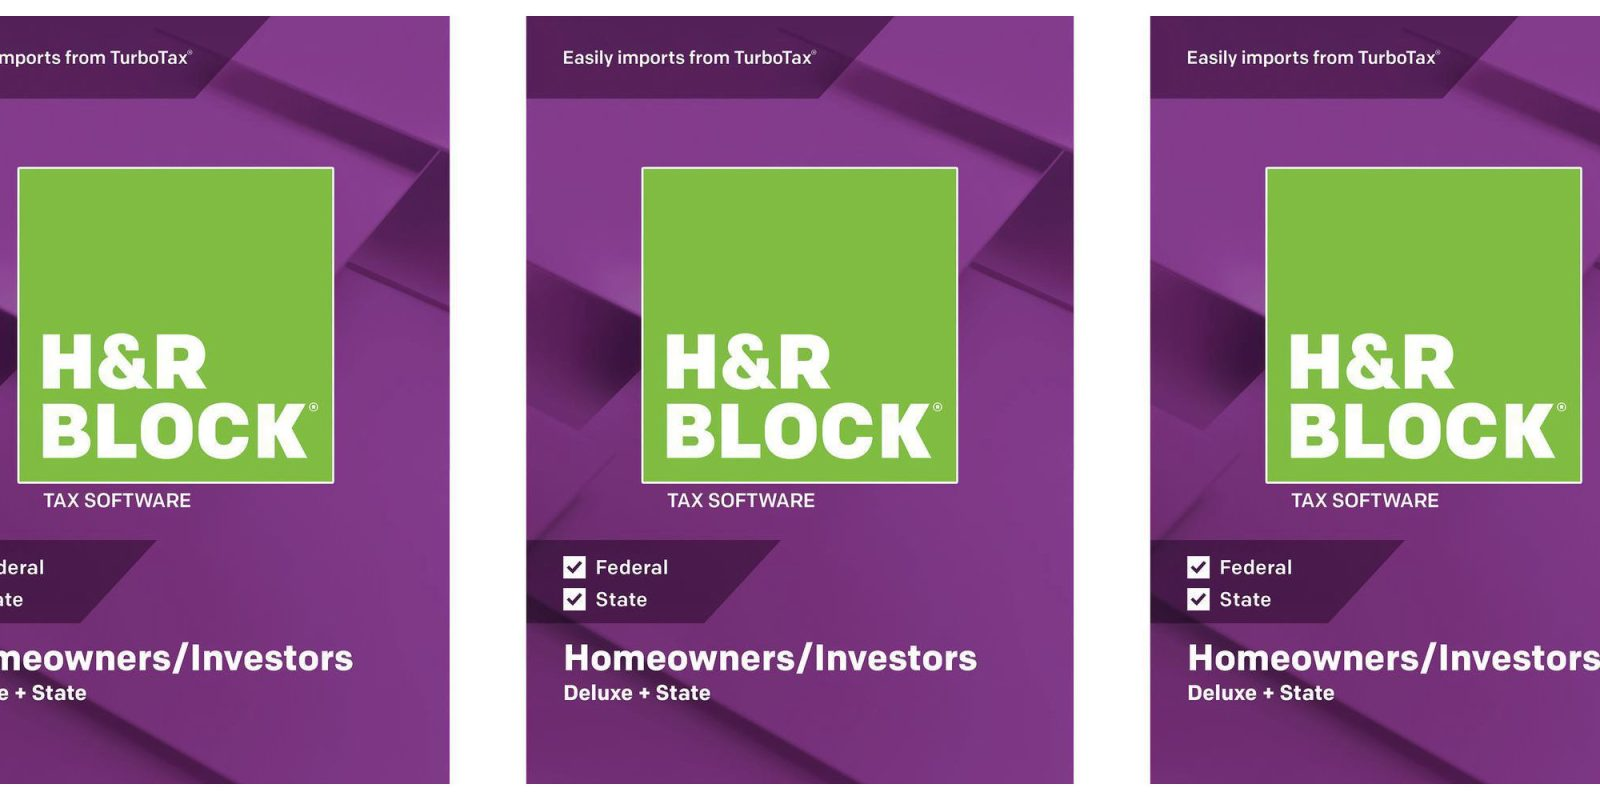 Maximize deductions with H&R BLOCK's Deluxe Tax Software for